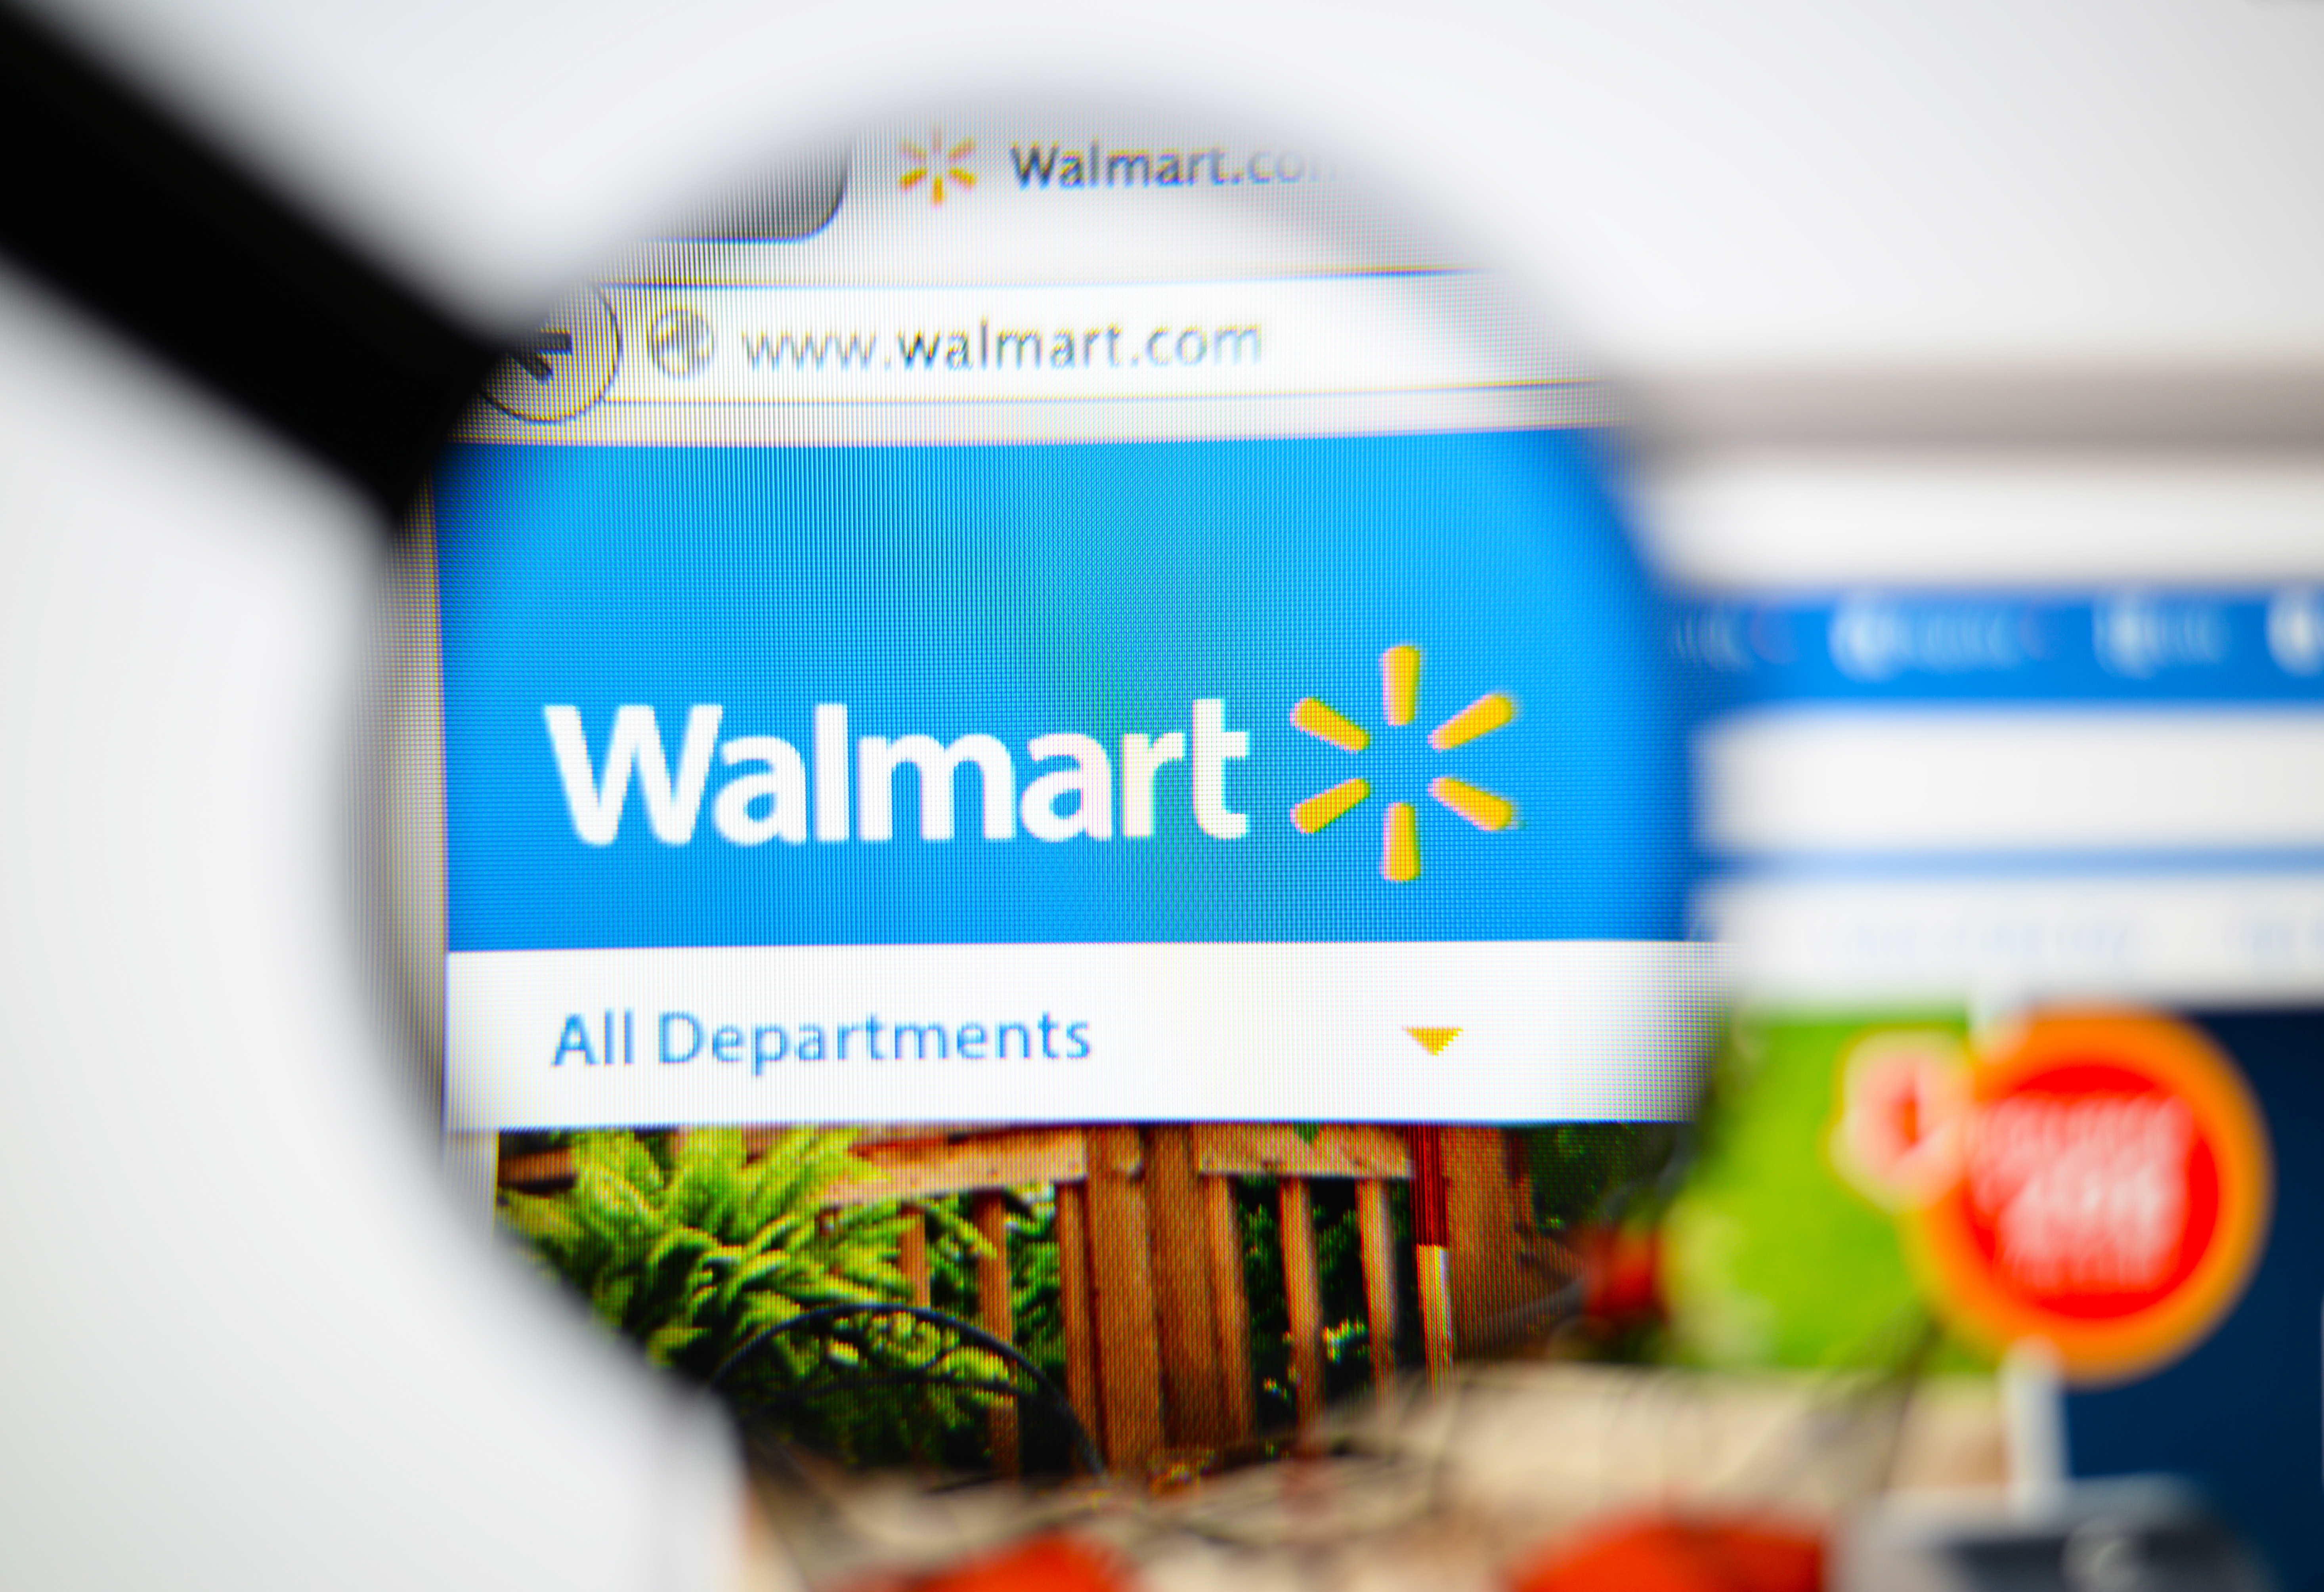 Selling on other marketplaces like Walmart.com can help your brand increase its market share on ecommerce.